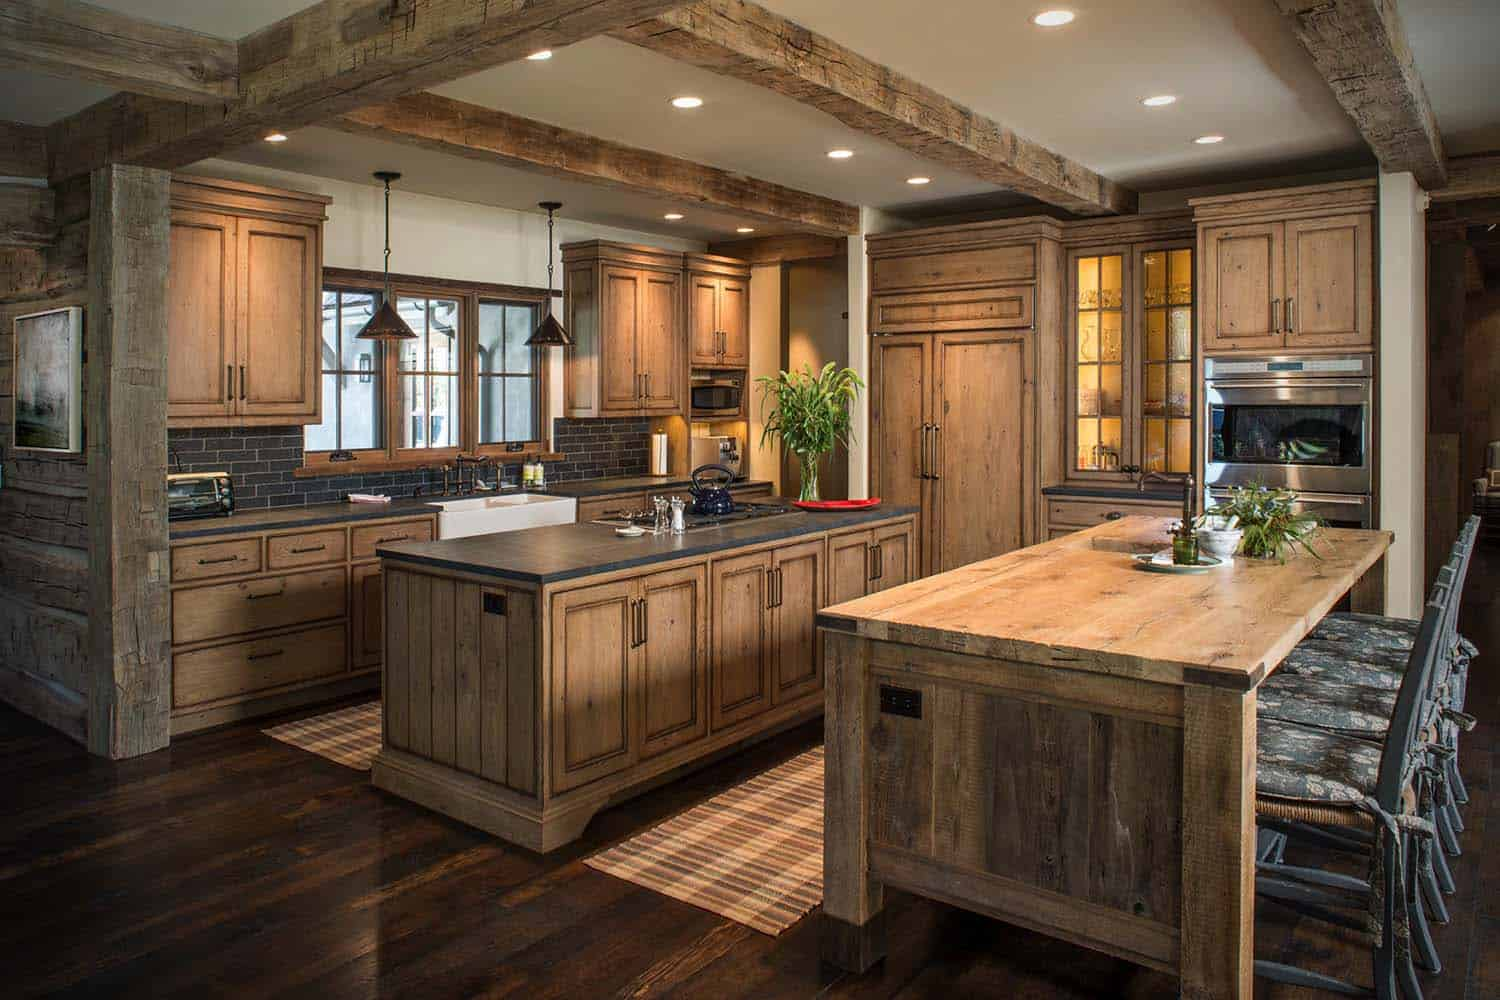 Wood River Valley Chalet-Miller Architects-05-1 Kindesign